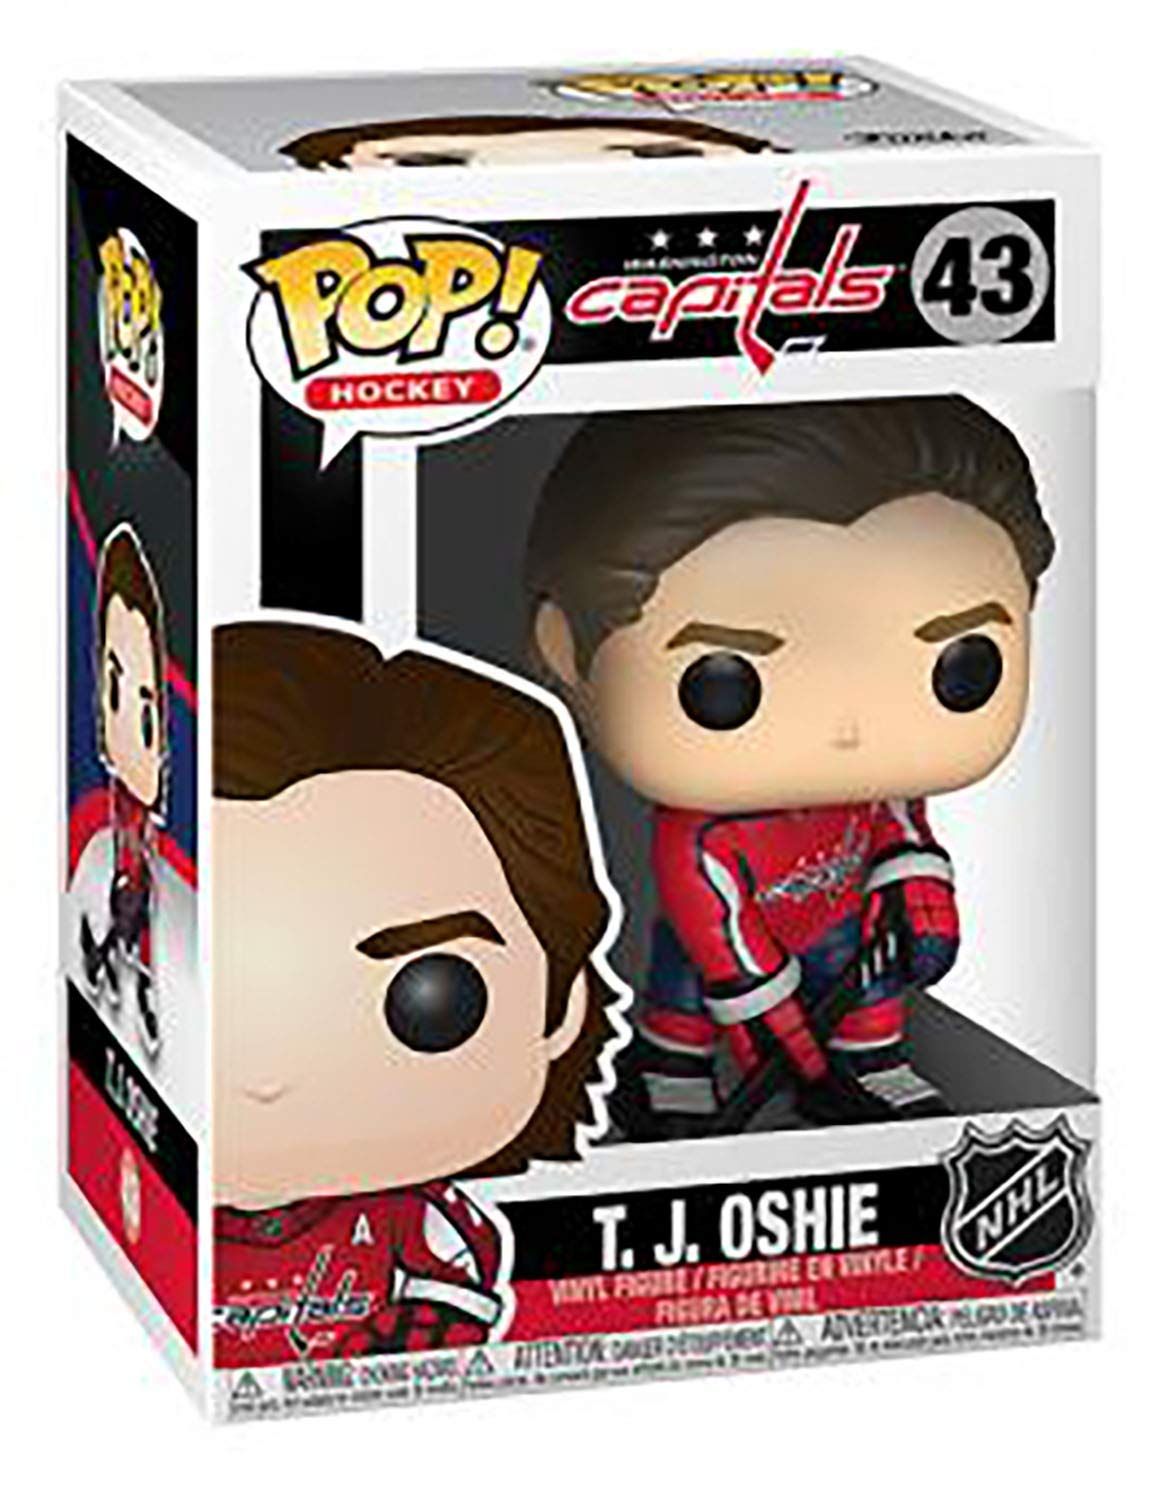 POP Sports NHL Washington Capitals TJ Oshie Action Figure Bundled with Pop Box Protector to Protect Display Box